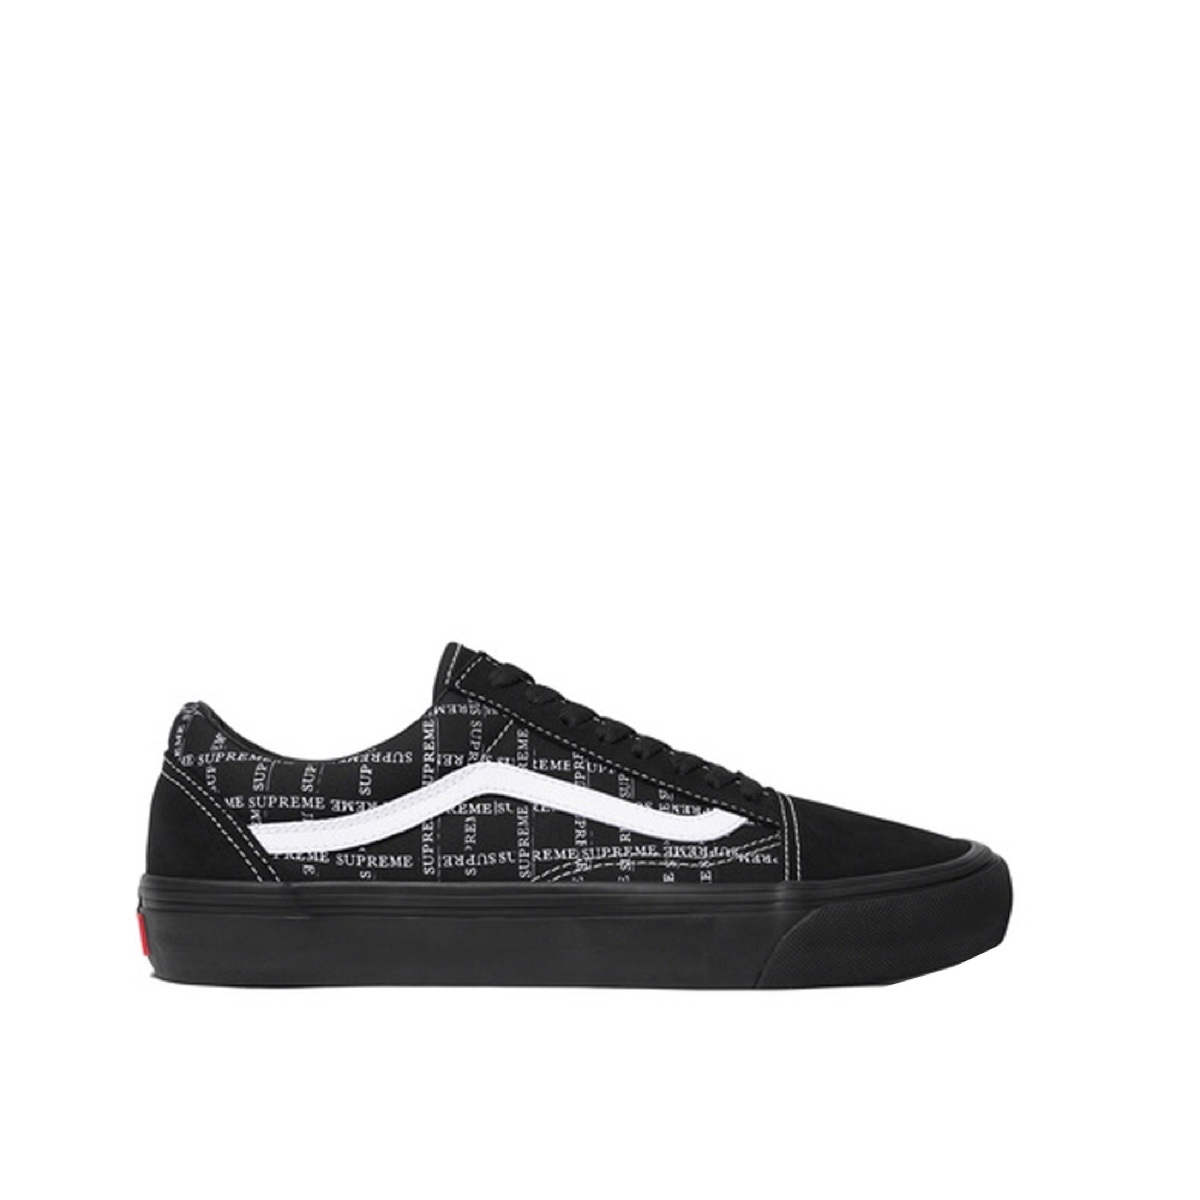 Supreme Vans Old Skool Pro Black